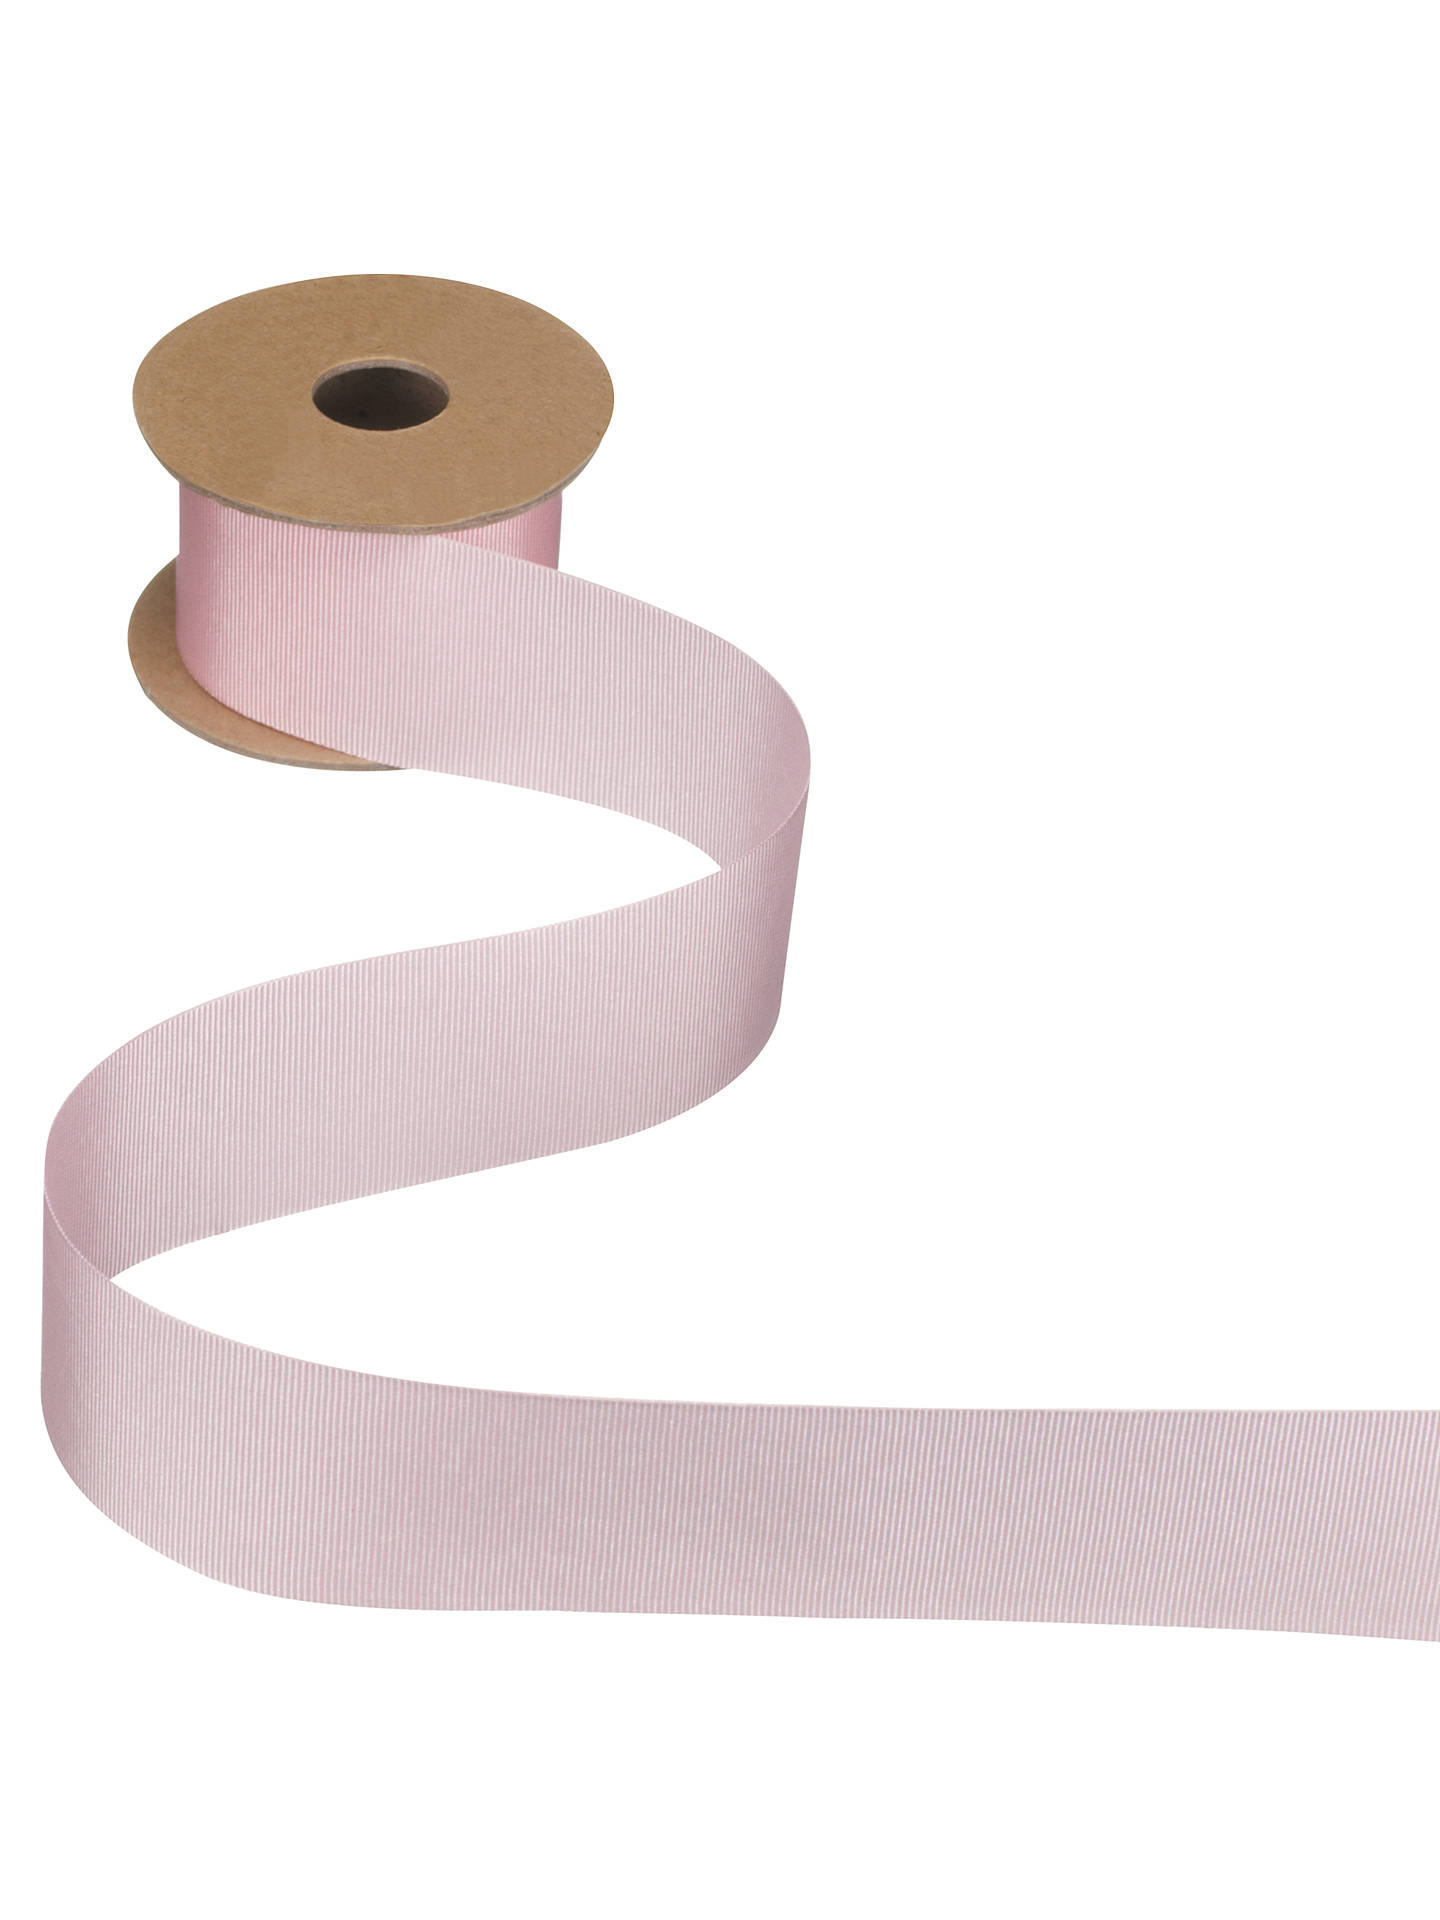 Buy John Lewis & Partners Grosgrain Ribbon, 5m, Pink, 10mm Online at johnlewis.com